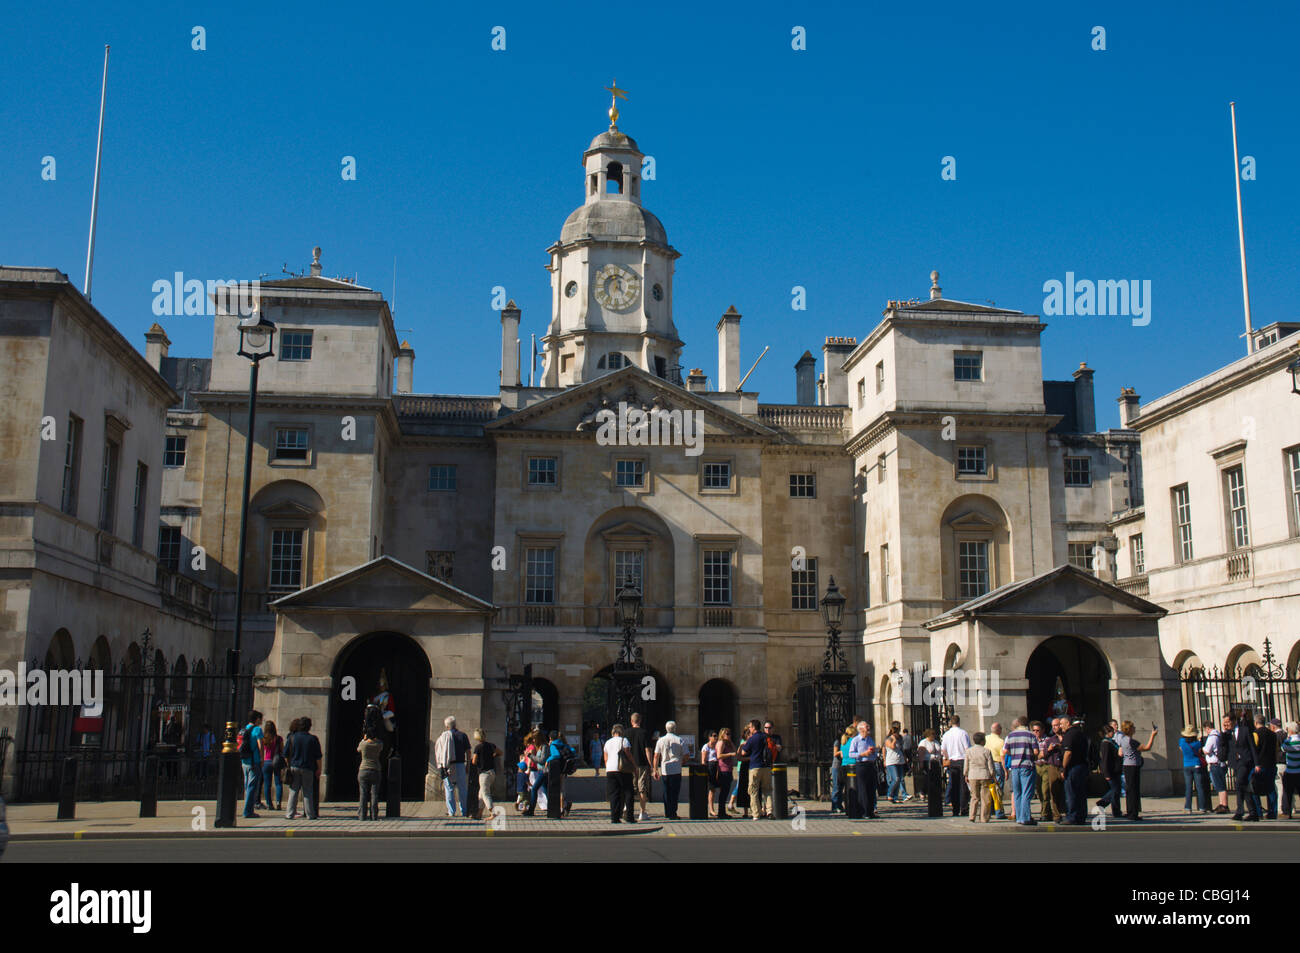 Horse Guards Parade exterior Whitehall Street Westminster Londres Angleterre Royaume-Uni Europe centrale Photo Stock